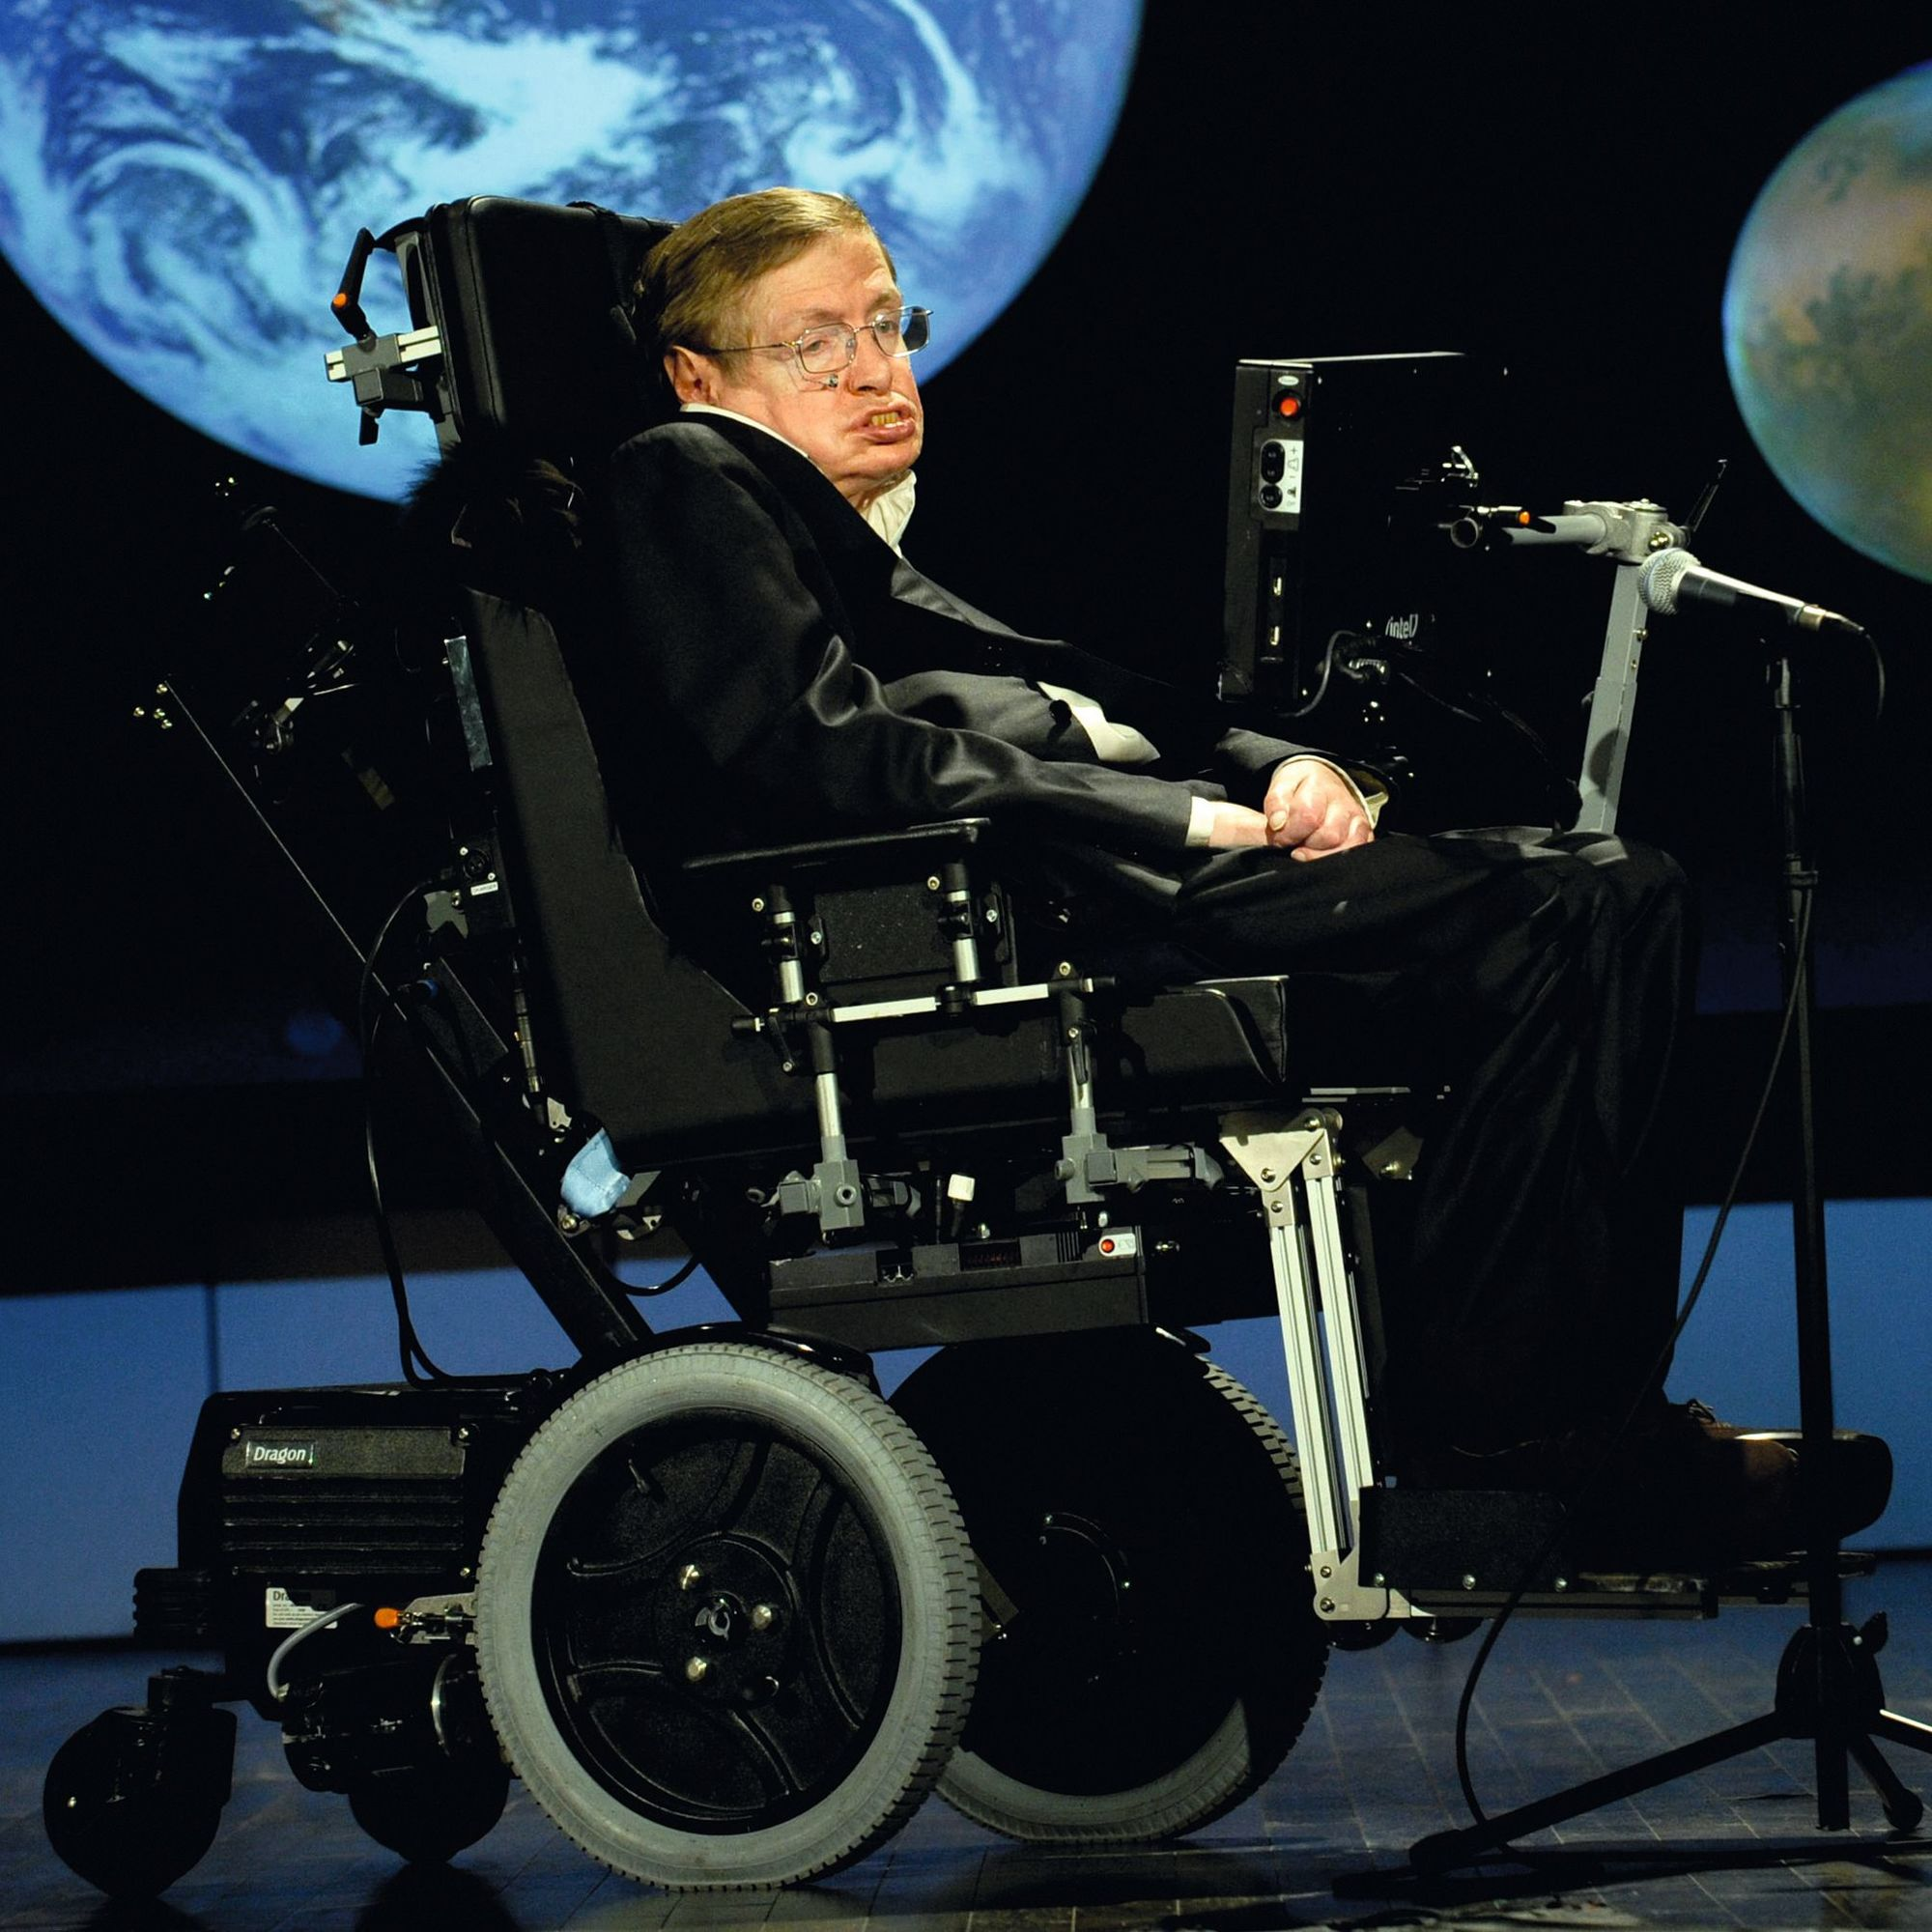 Stephen Hawking giving a lecture for NASA's 50th anniversary, 2008.